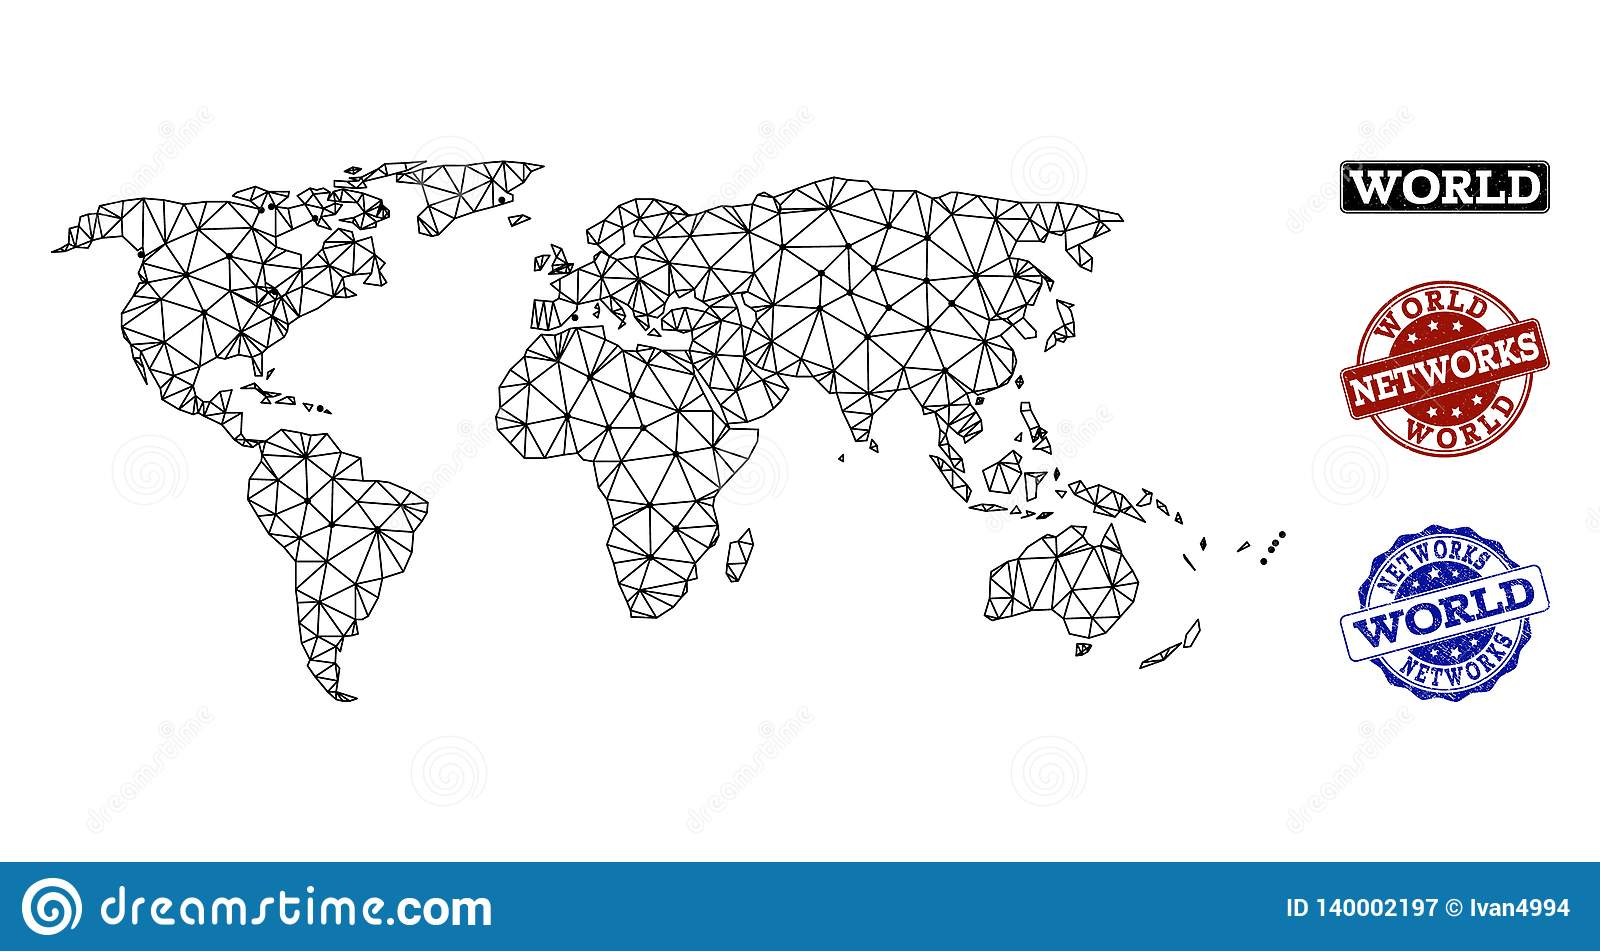 Polygonal Network Mesh Vector Map of World and Network Grunge Stamps